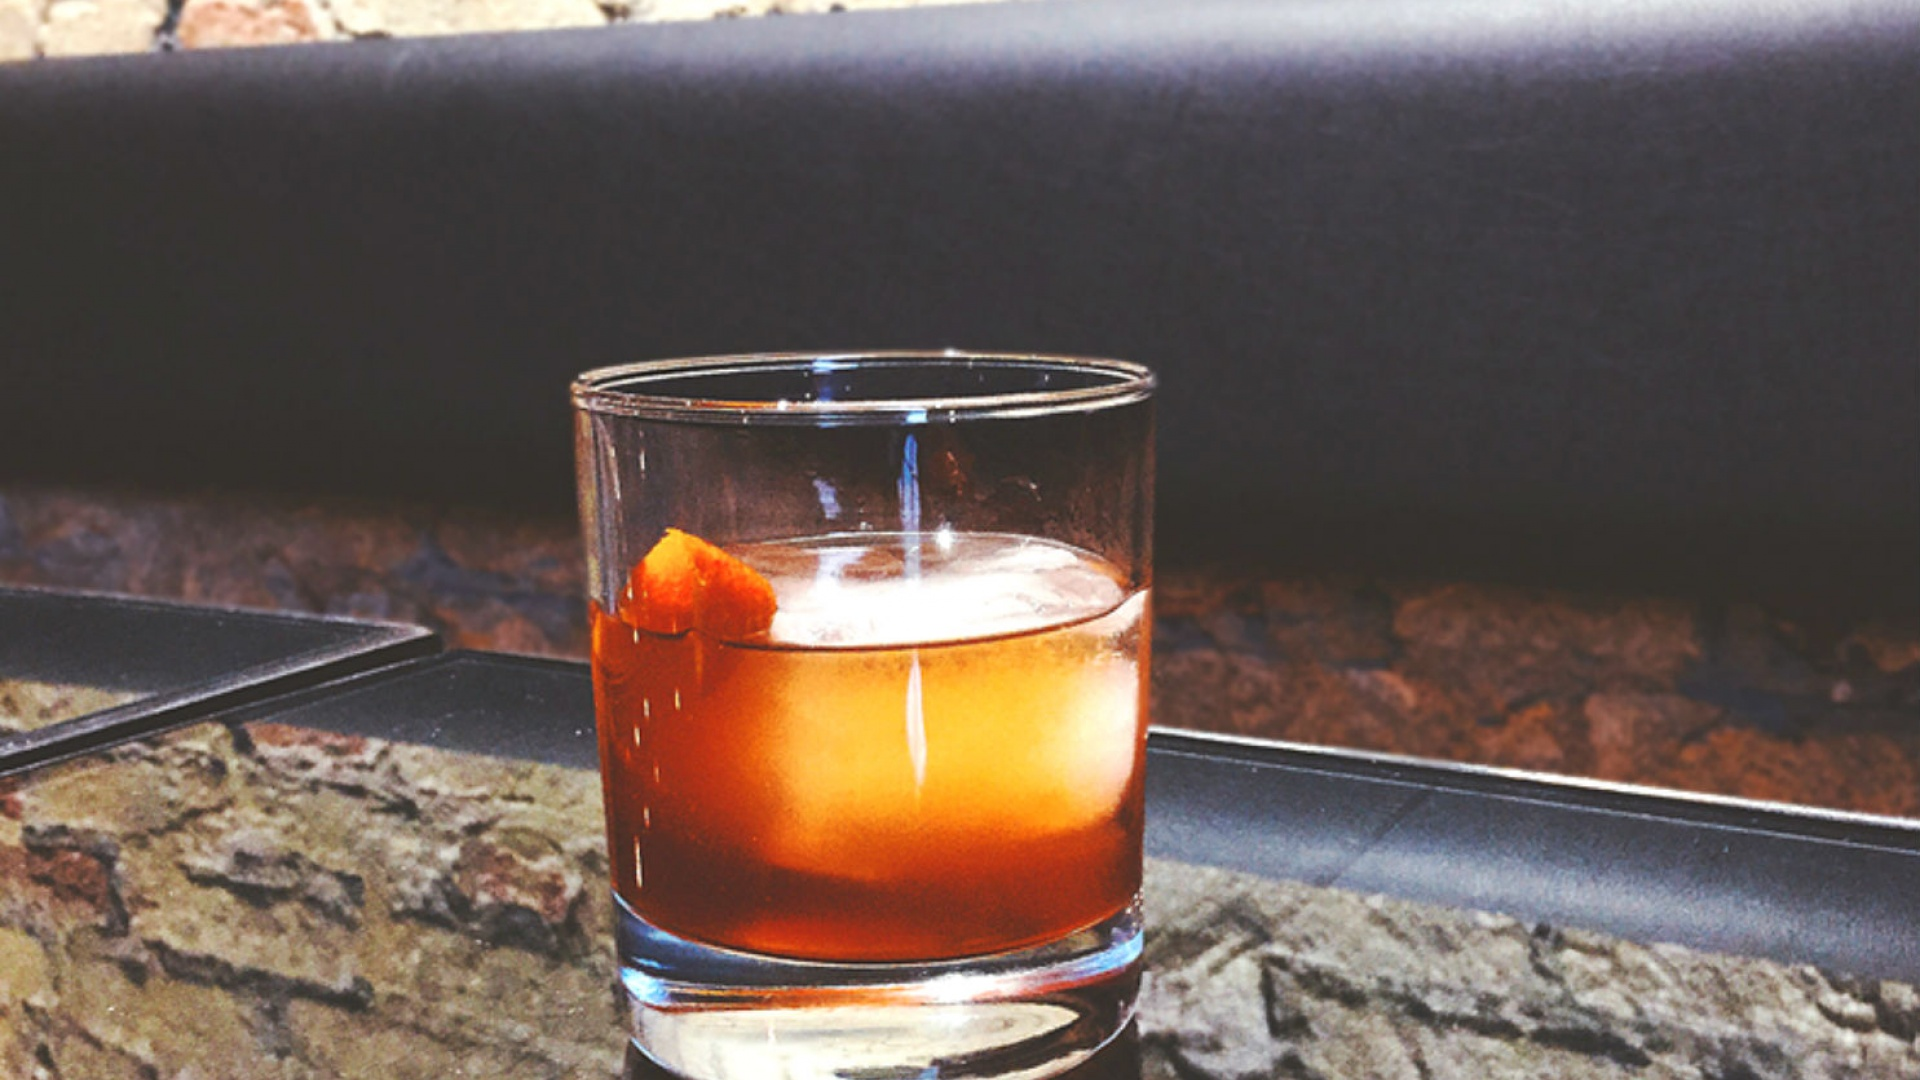 Woodford old fashioned recipe 29